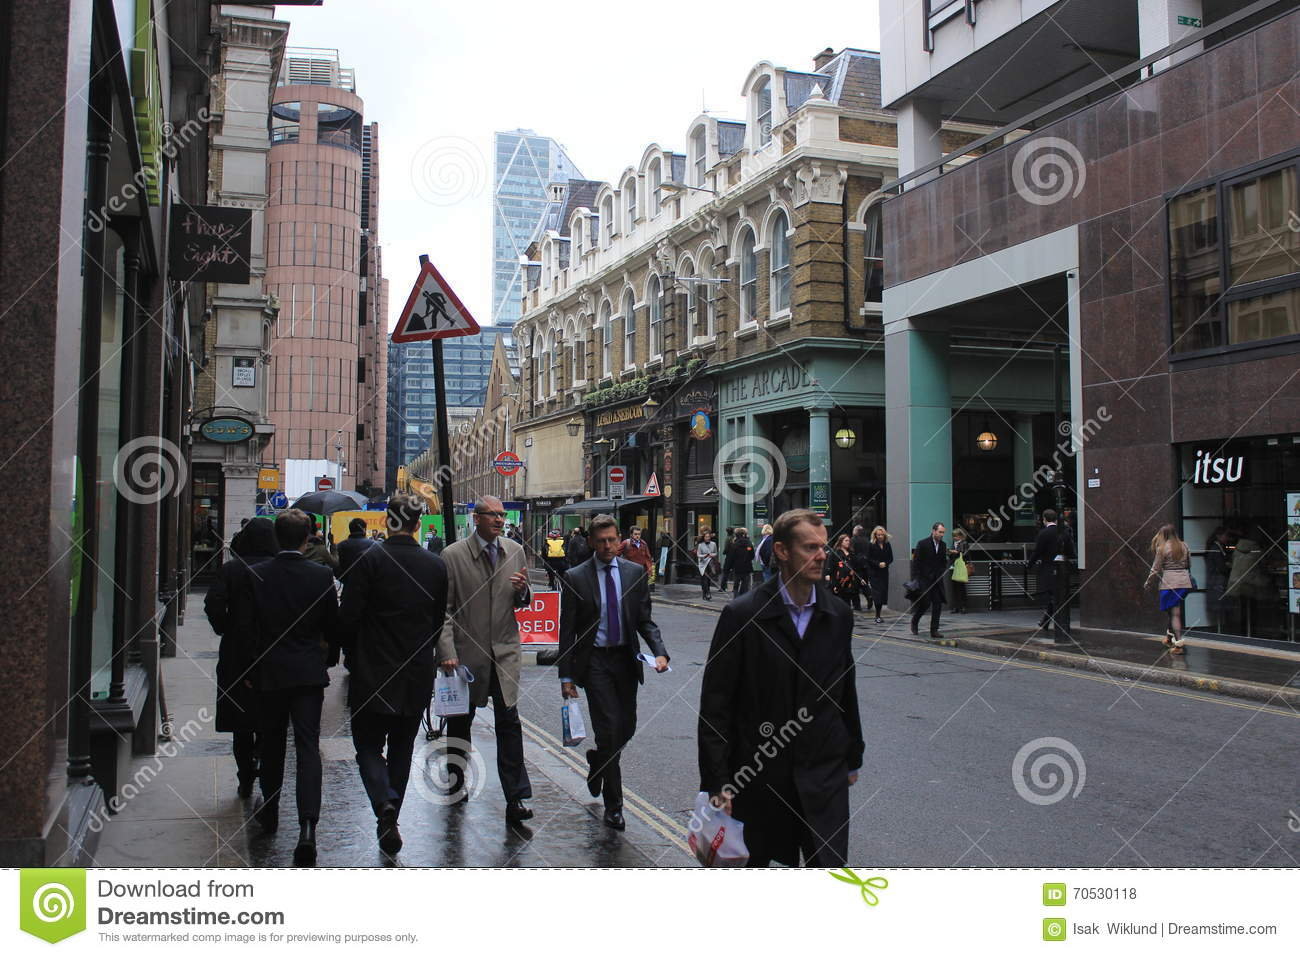 Modern Architecture London England male pedestrians in downtown london, people in the street, modern